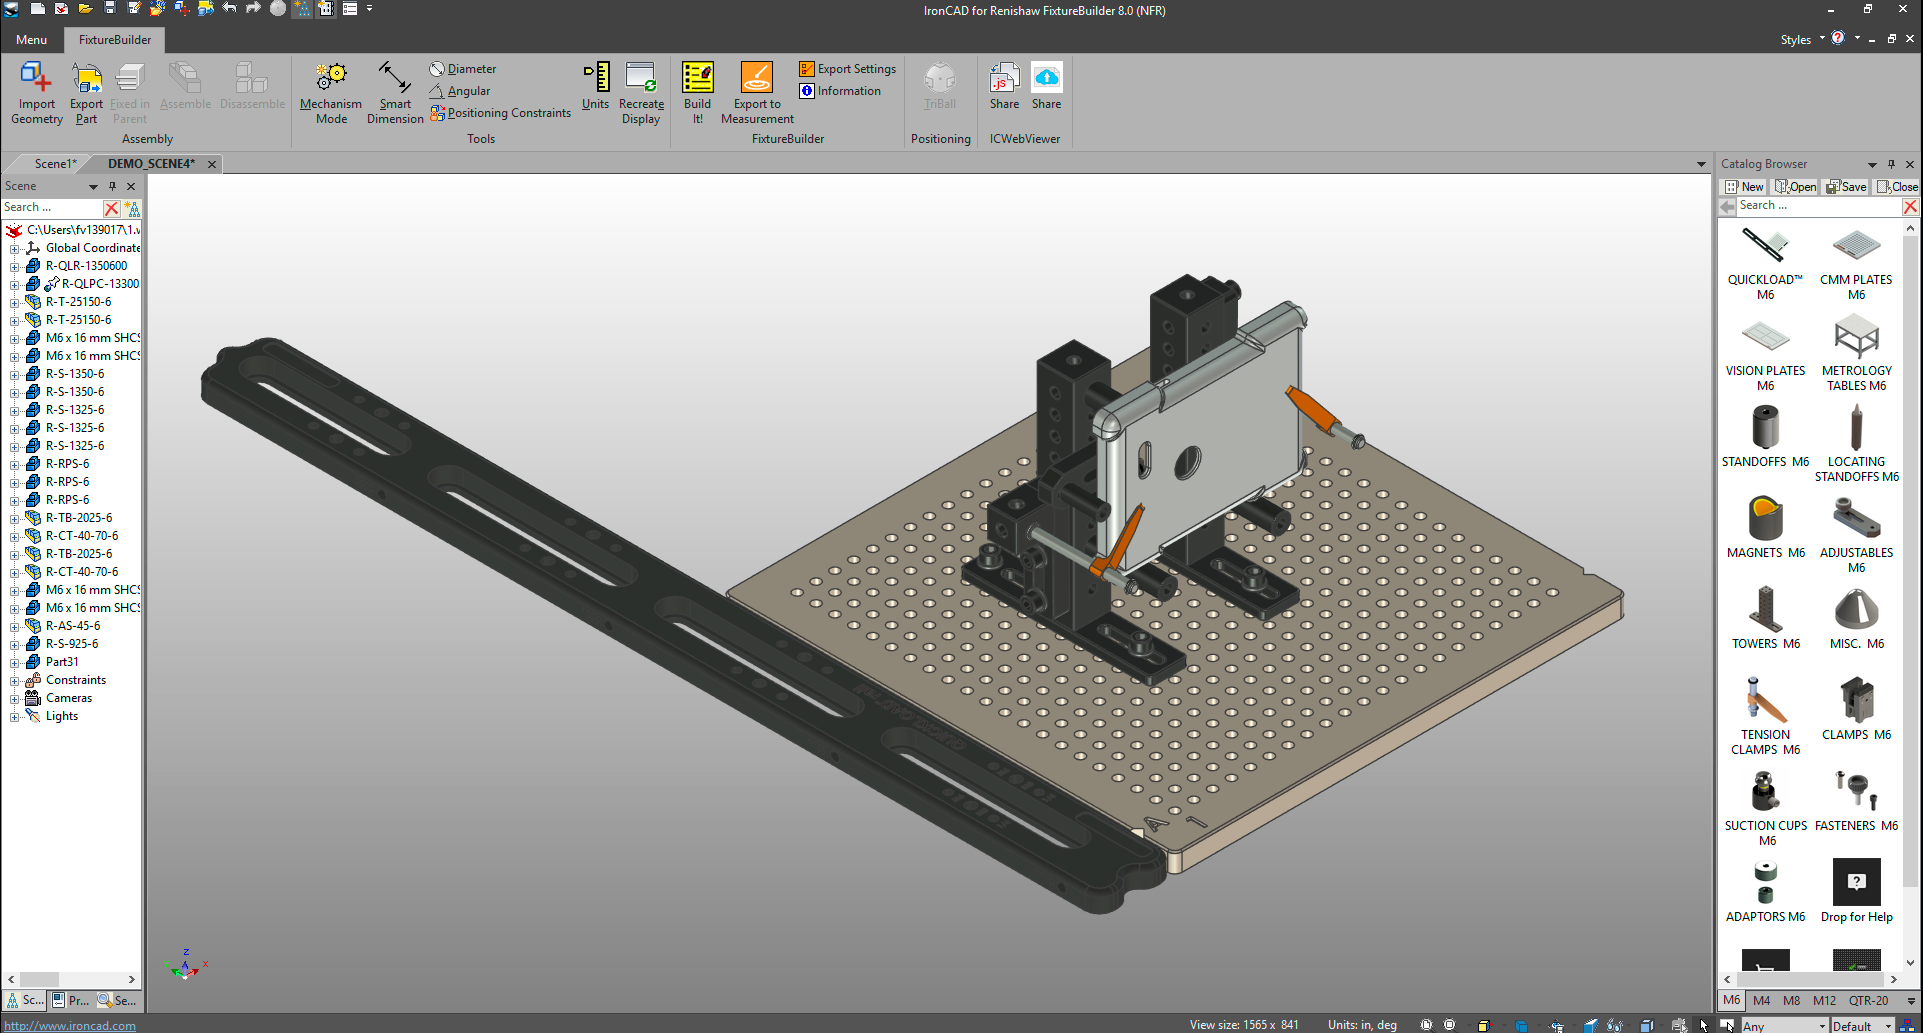 The QuickLoad rail in FixtureBuilder. Image via Renishaw.